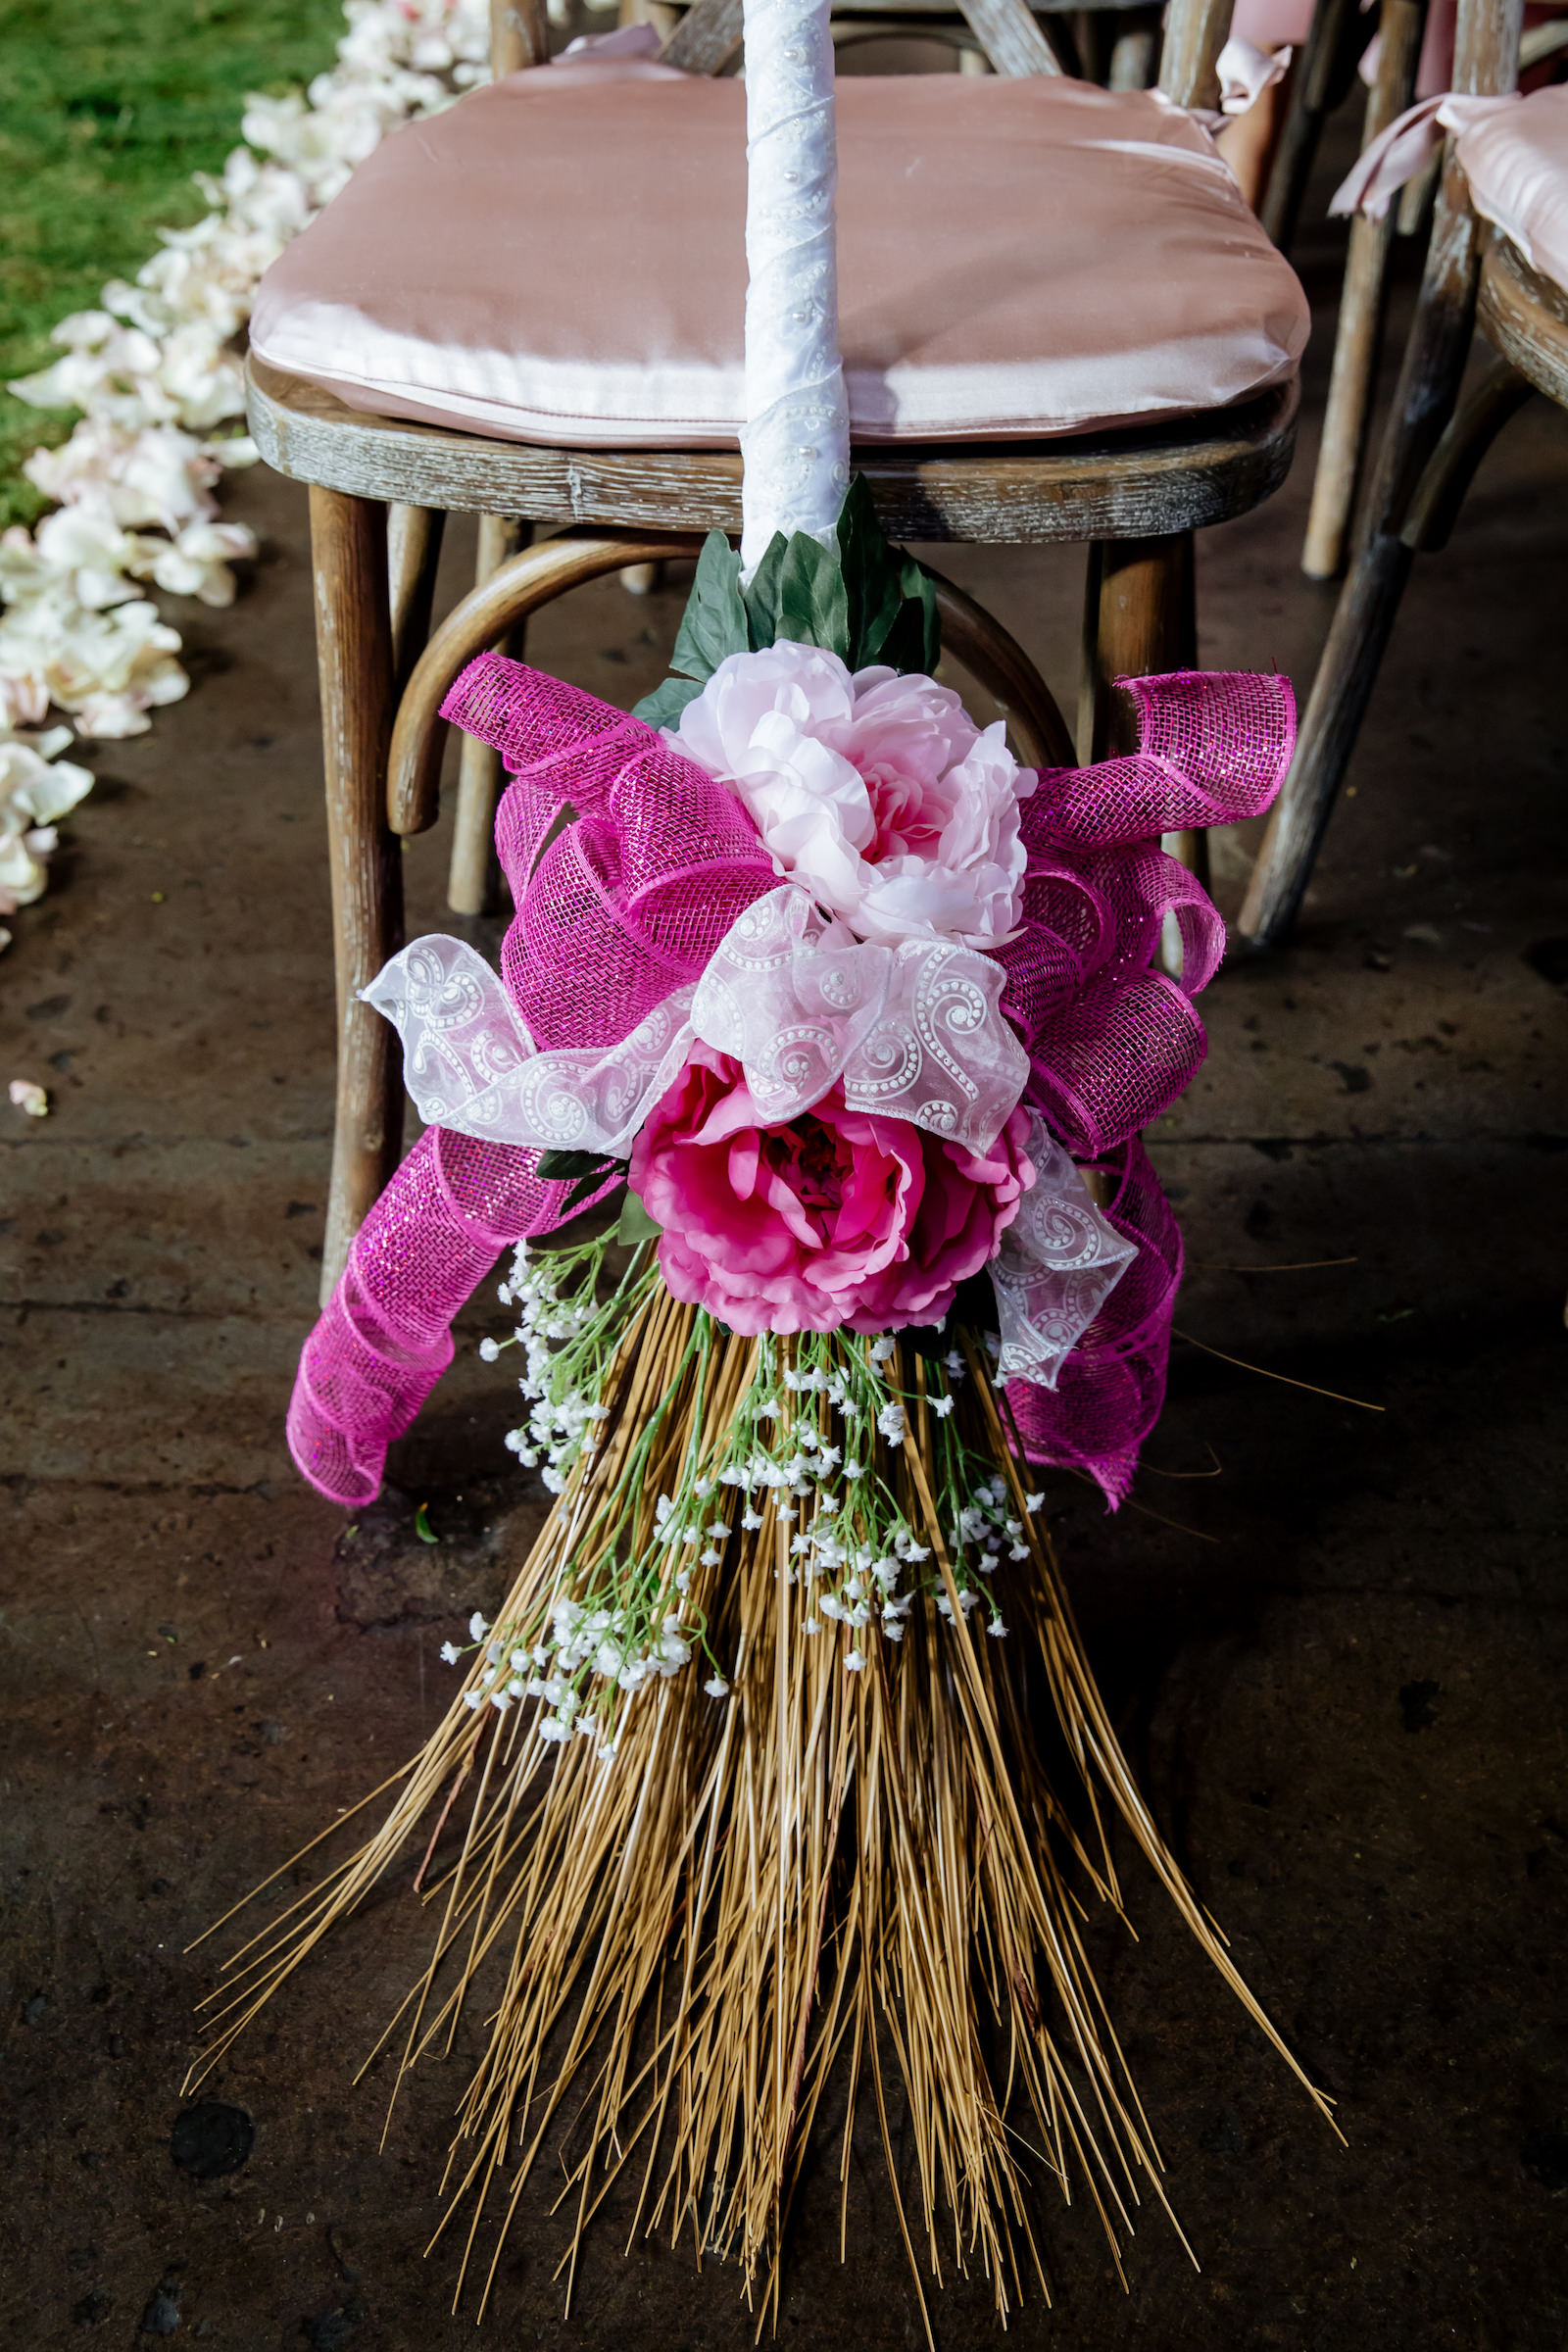 Wedding Broom with Pink Roses and Ribbons   Jumping The Broom Tradition